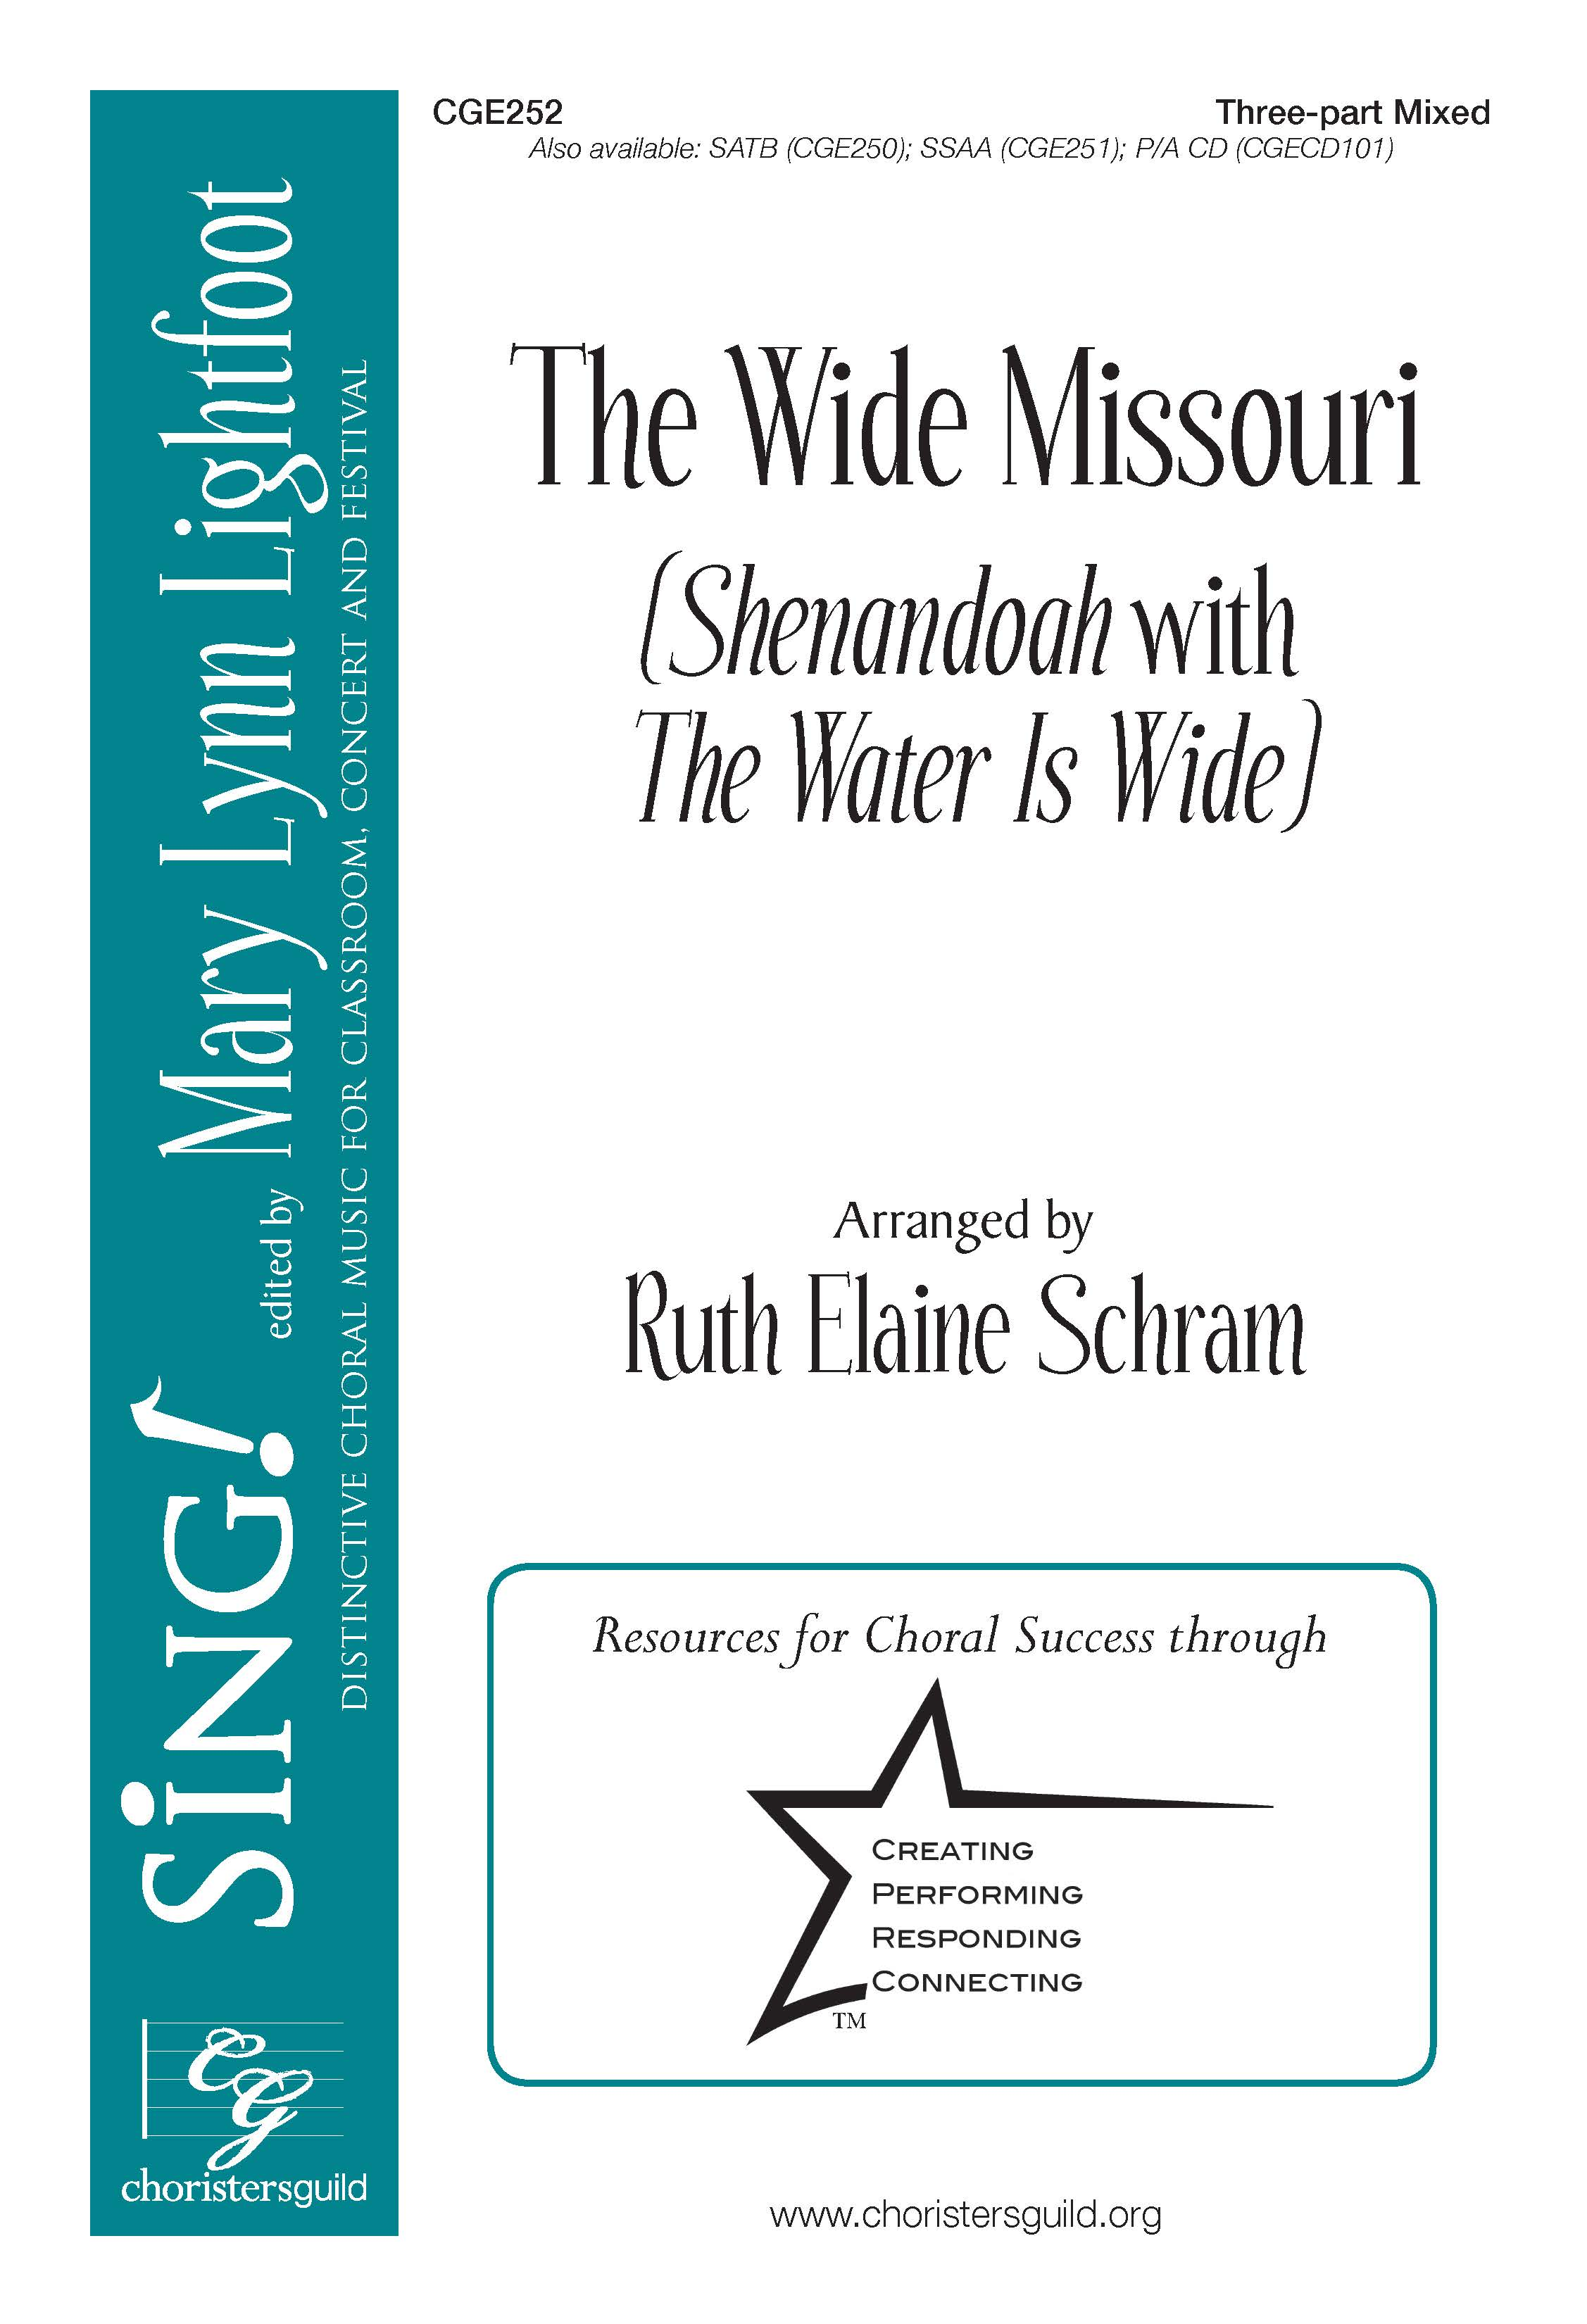 The Wide Missouri Three-part mixed